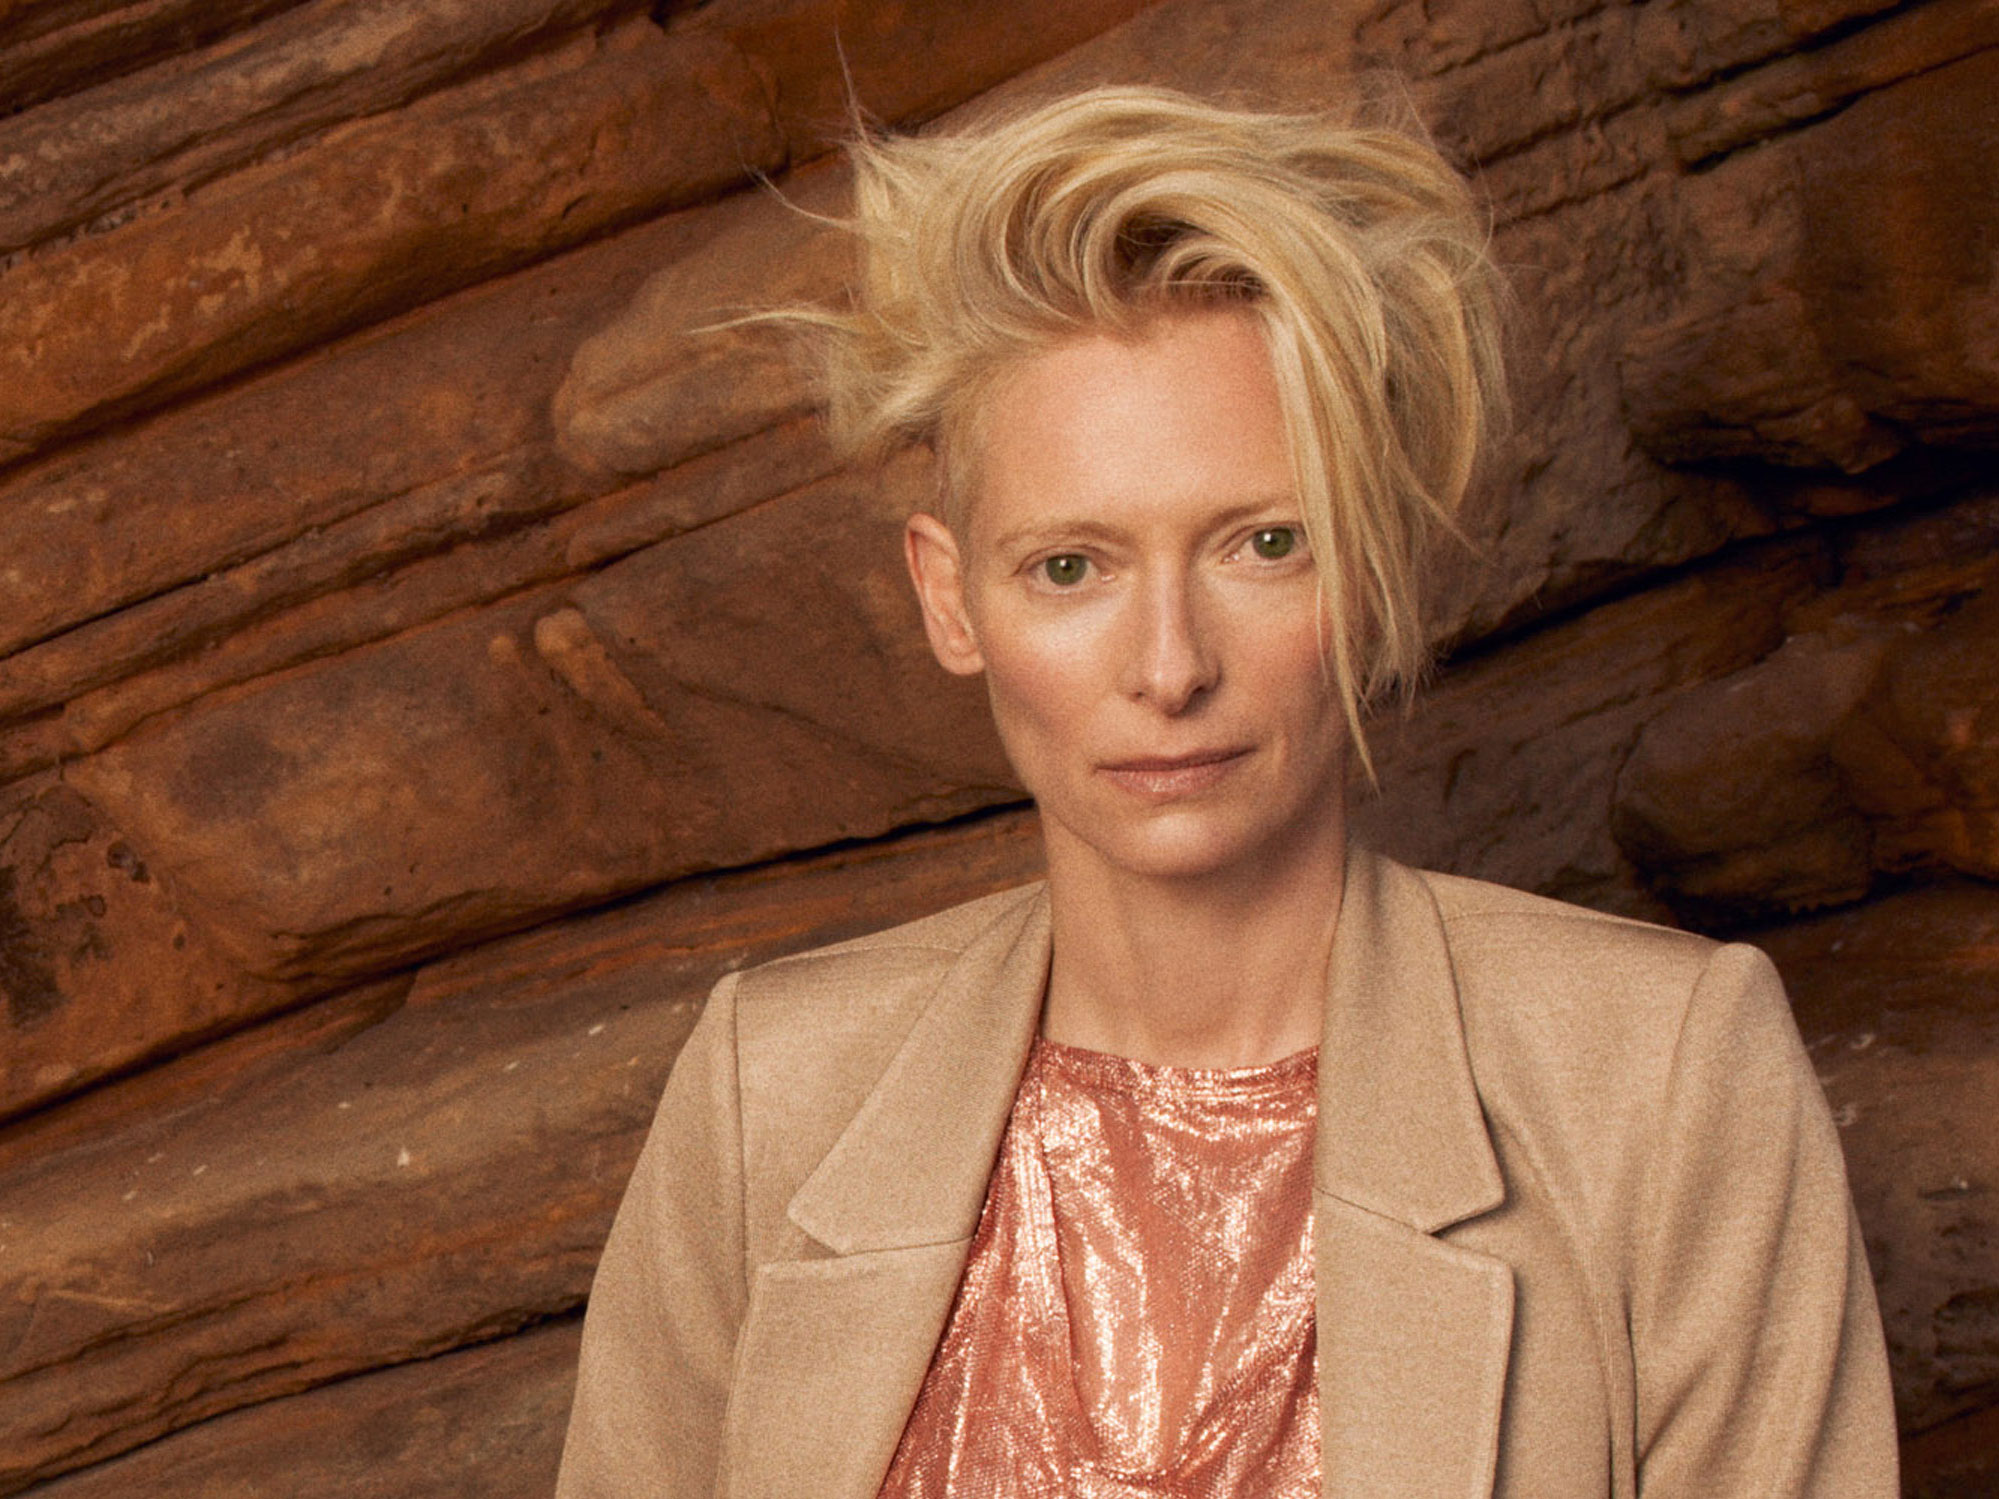 So, Tilda Swinton built a school. NBD.